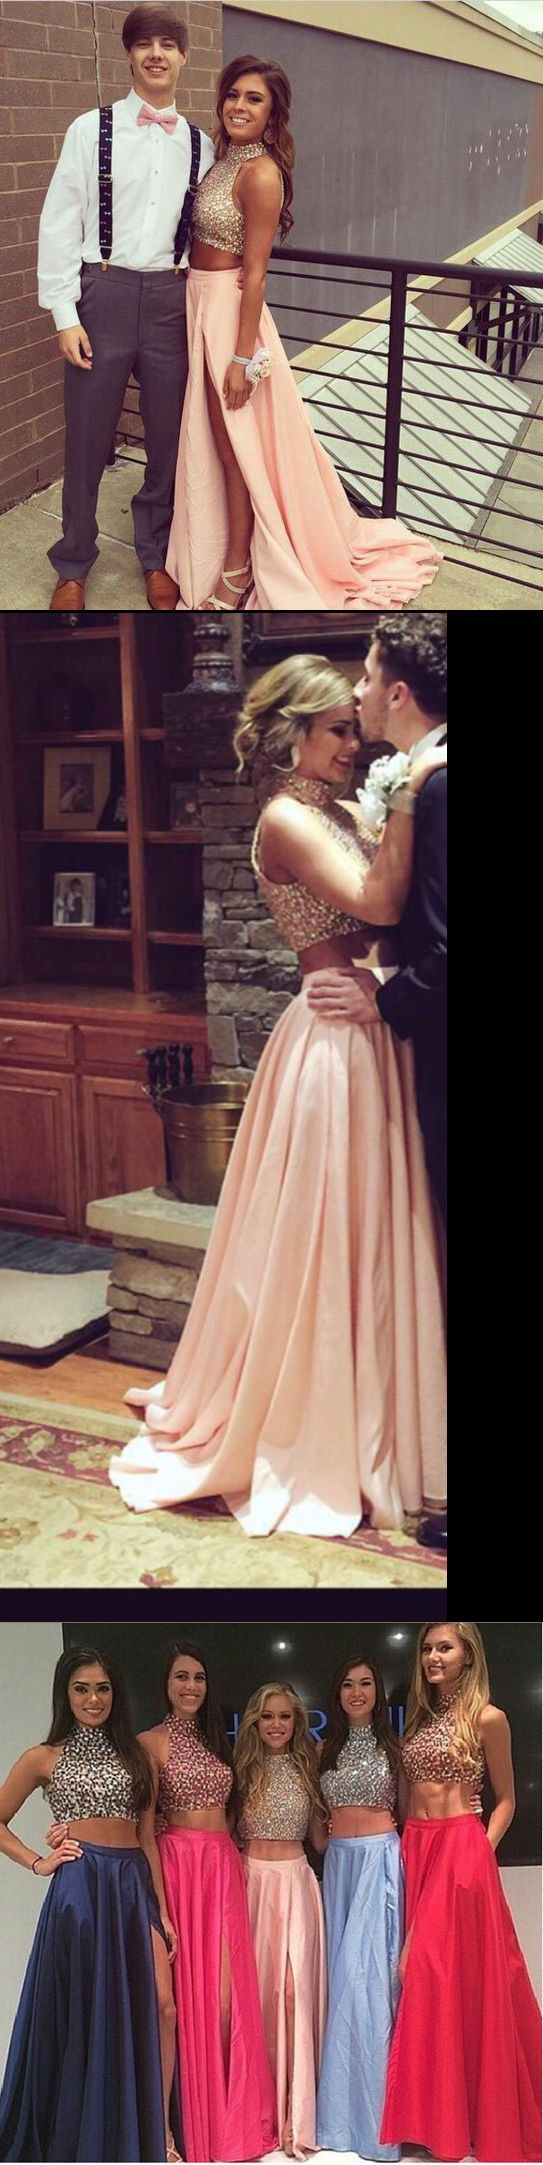 High Neck Two Piece Pink Taffeta Long Prom Dresses 2015, Front Split Mid Section Dark Blue Beadings Sexy Evening Prom Gowns,Showing Navel Formal Women Dresses,Graduation Dress http://www.luulla.com/product/422603/high-neck-two-piece-pink-taffeta-long-prom-dresses-2015-front-split-mid-section-dark-blue-beadings-sexy-evening-prom-gowns-showing-navel-formal-women-dresses-graduation-dress #promdresses #promdress #longpromdress #longpromdresses #2piecespromdresses #navybluepromdress